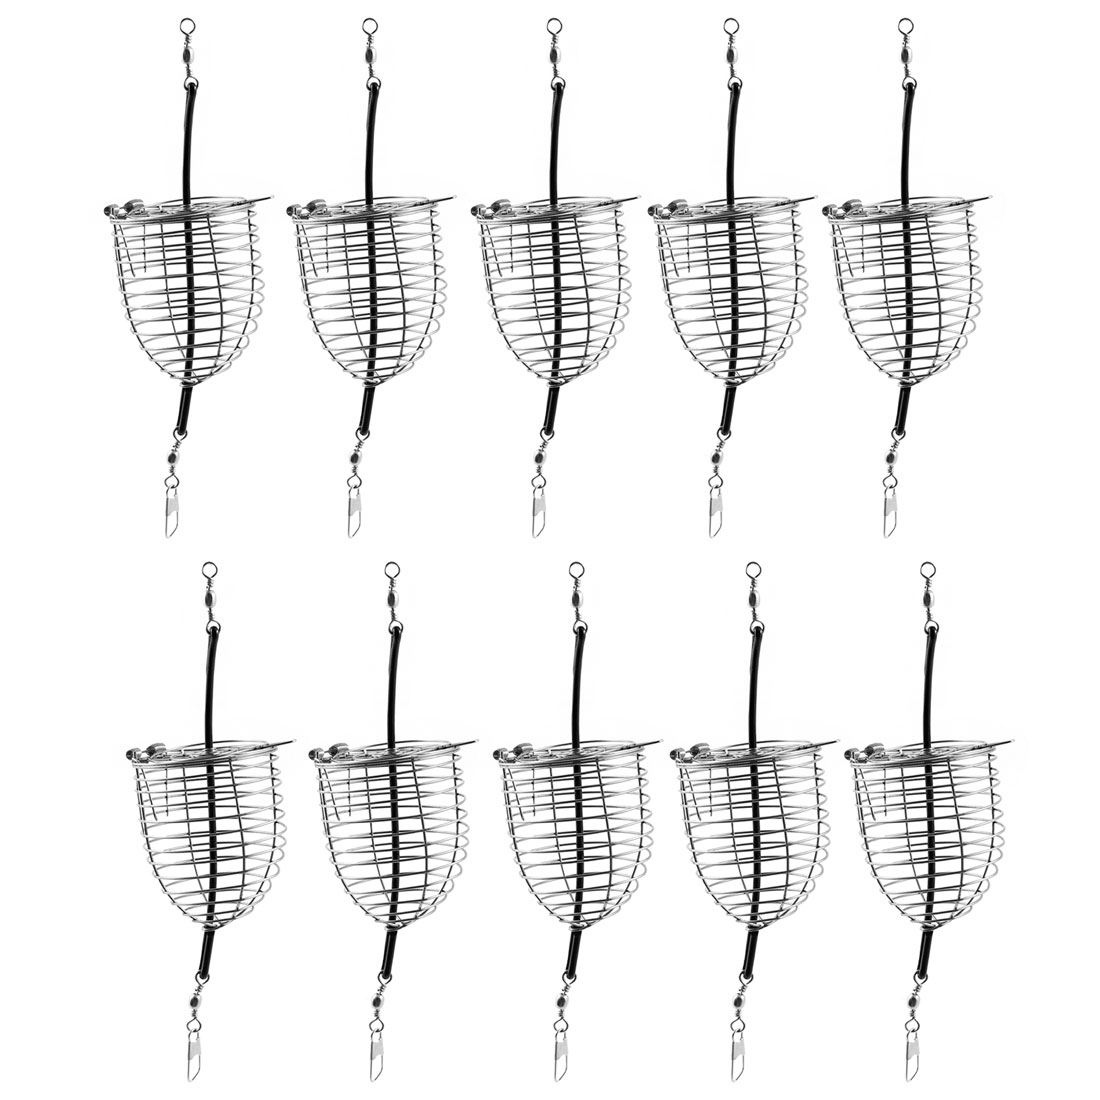 10 PCS Stainless Steel Fishing Bait Cage Basket